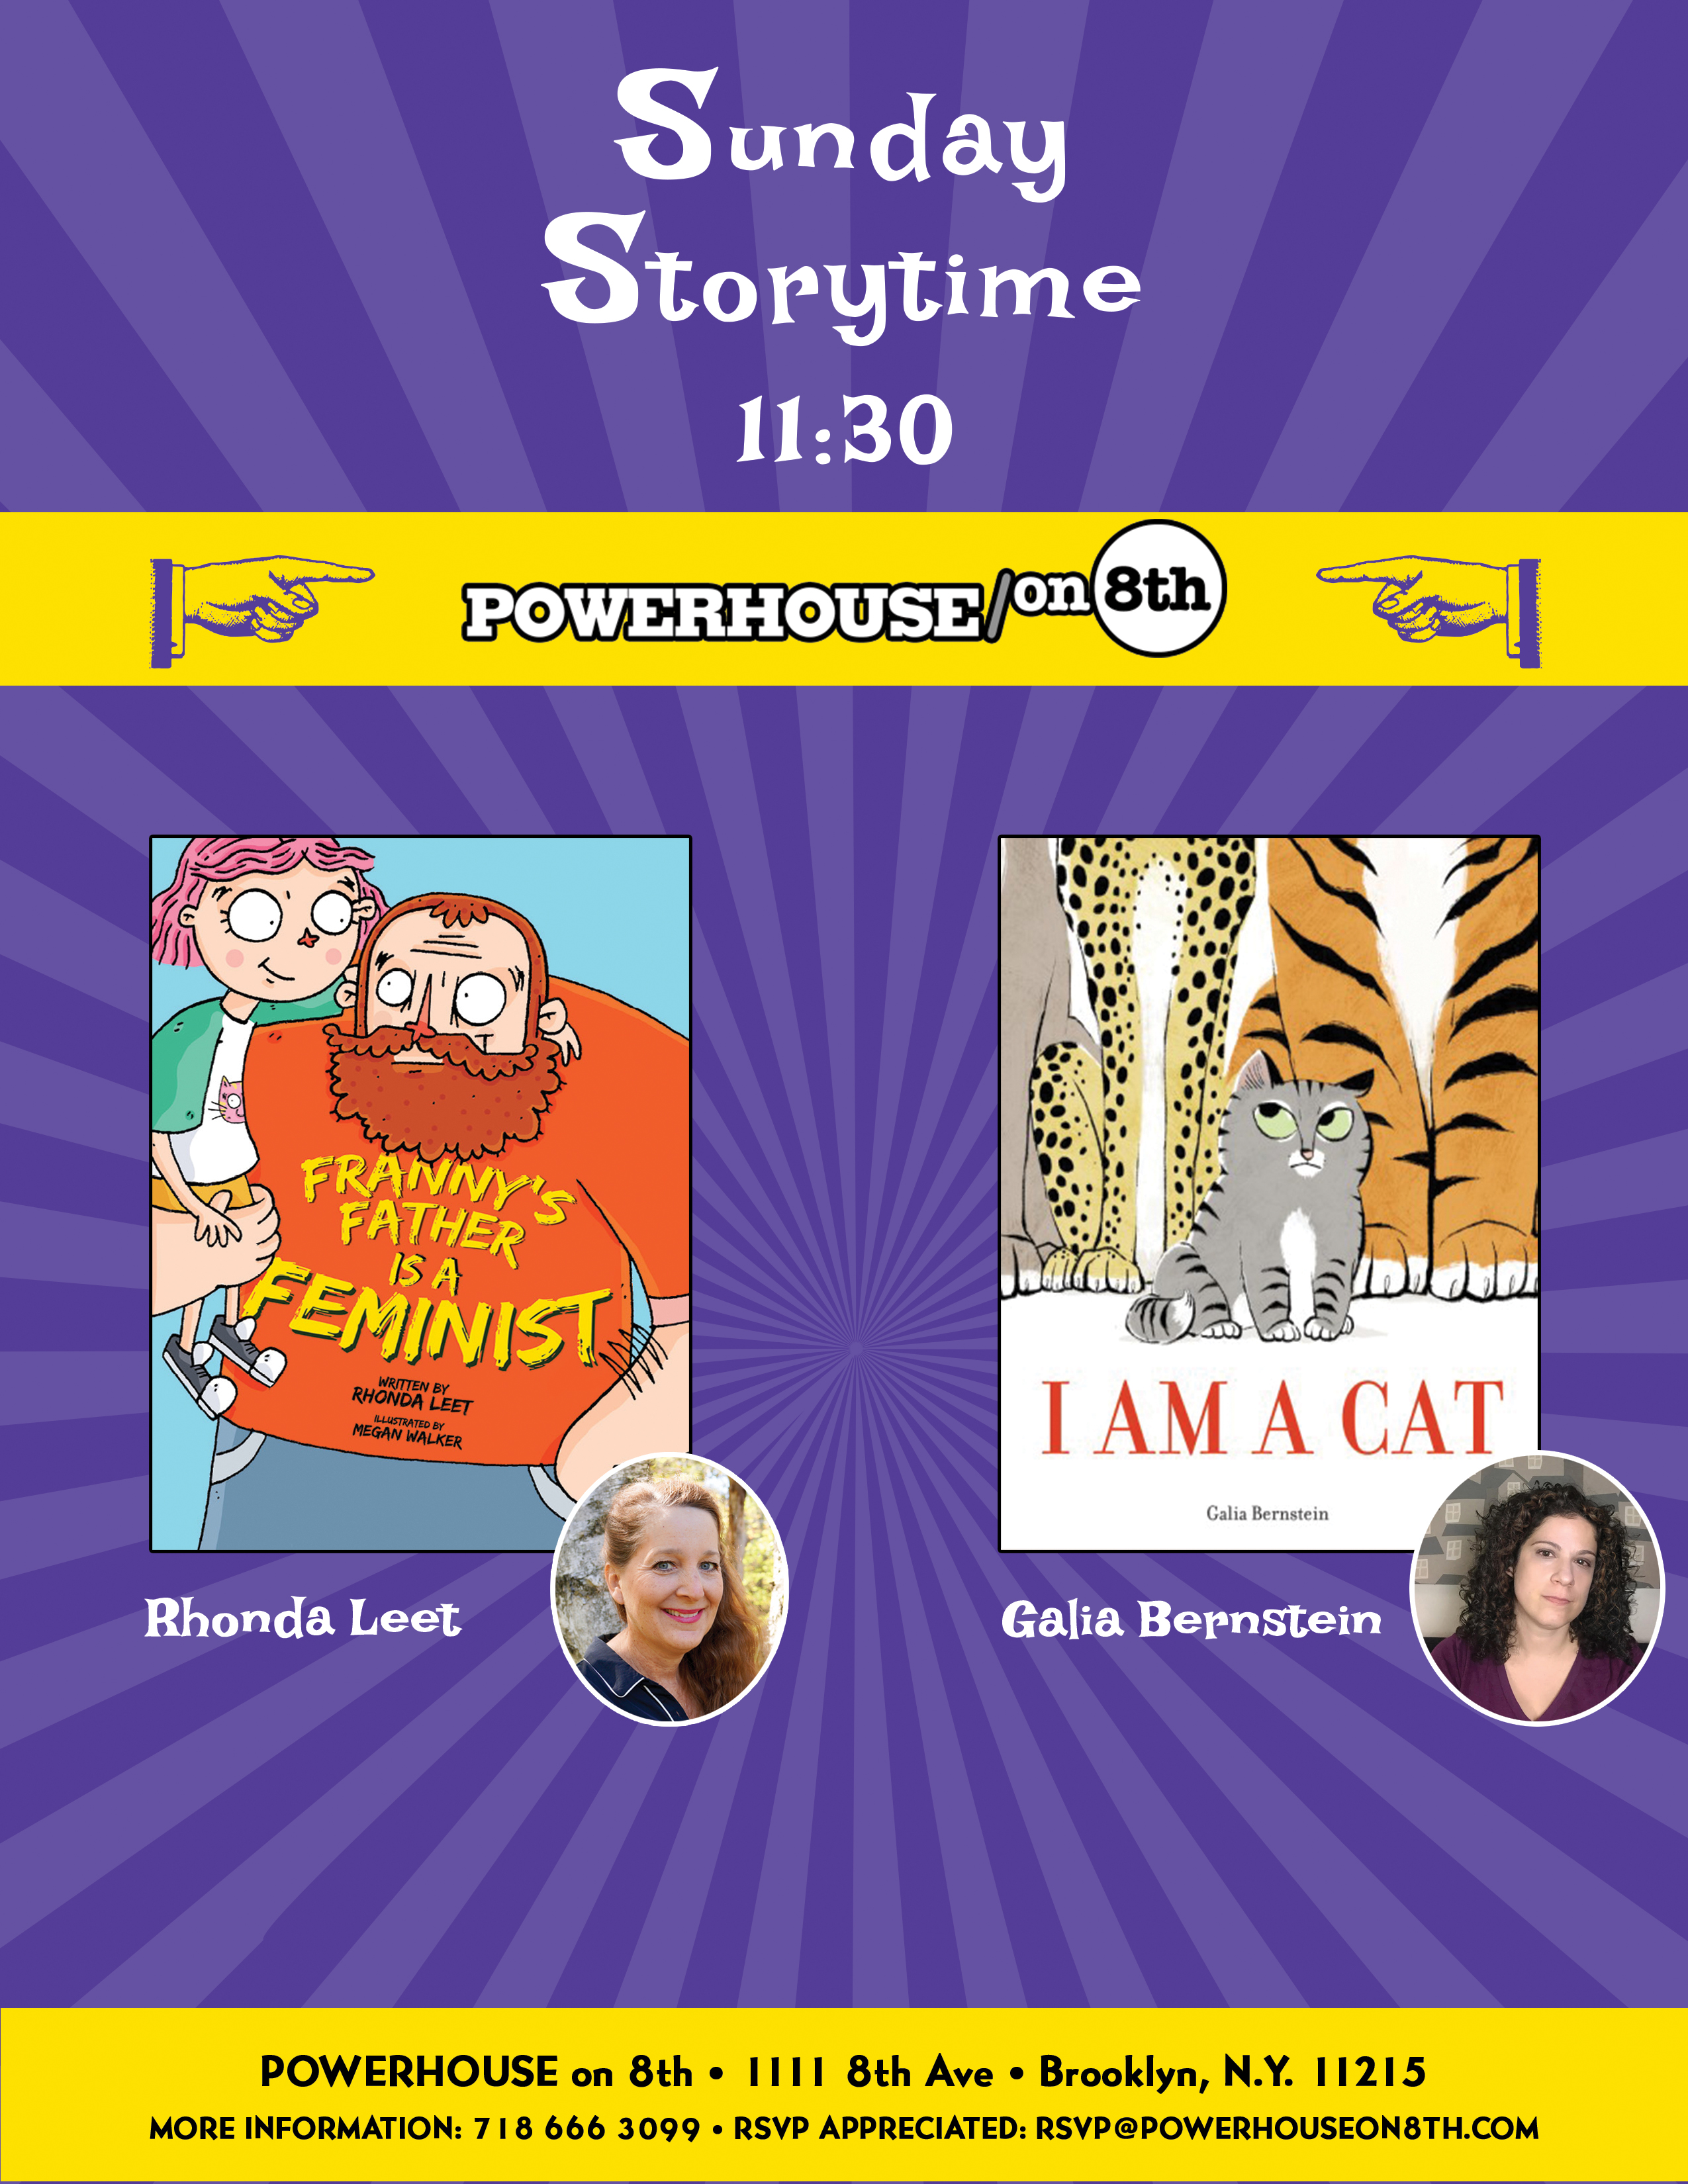 Joint Sunday Story Time with Galia Bernstein (Author & Illustrator of I Am a Cat) & Rhonda Leet (Author of Franny's Father is a Feminist)